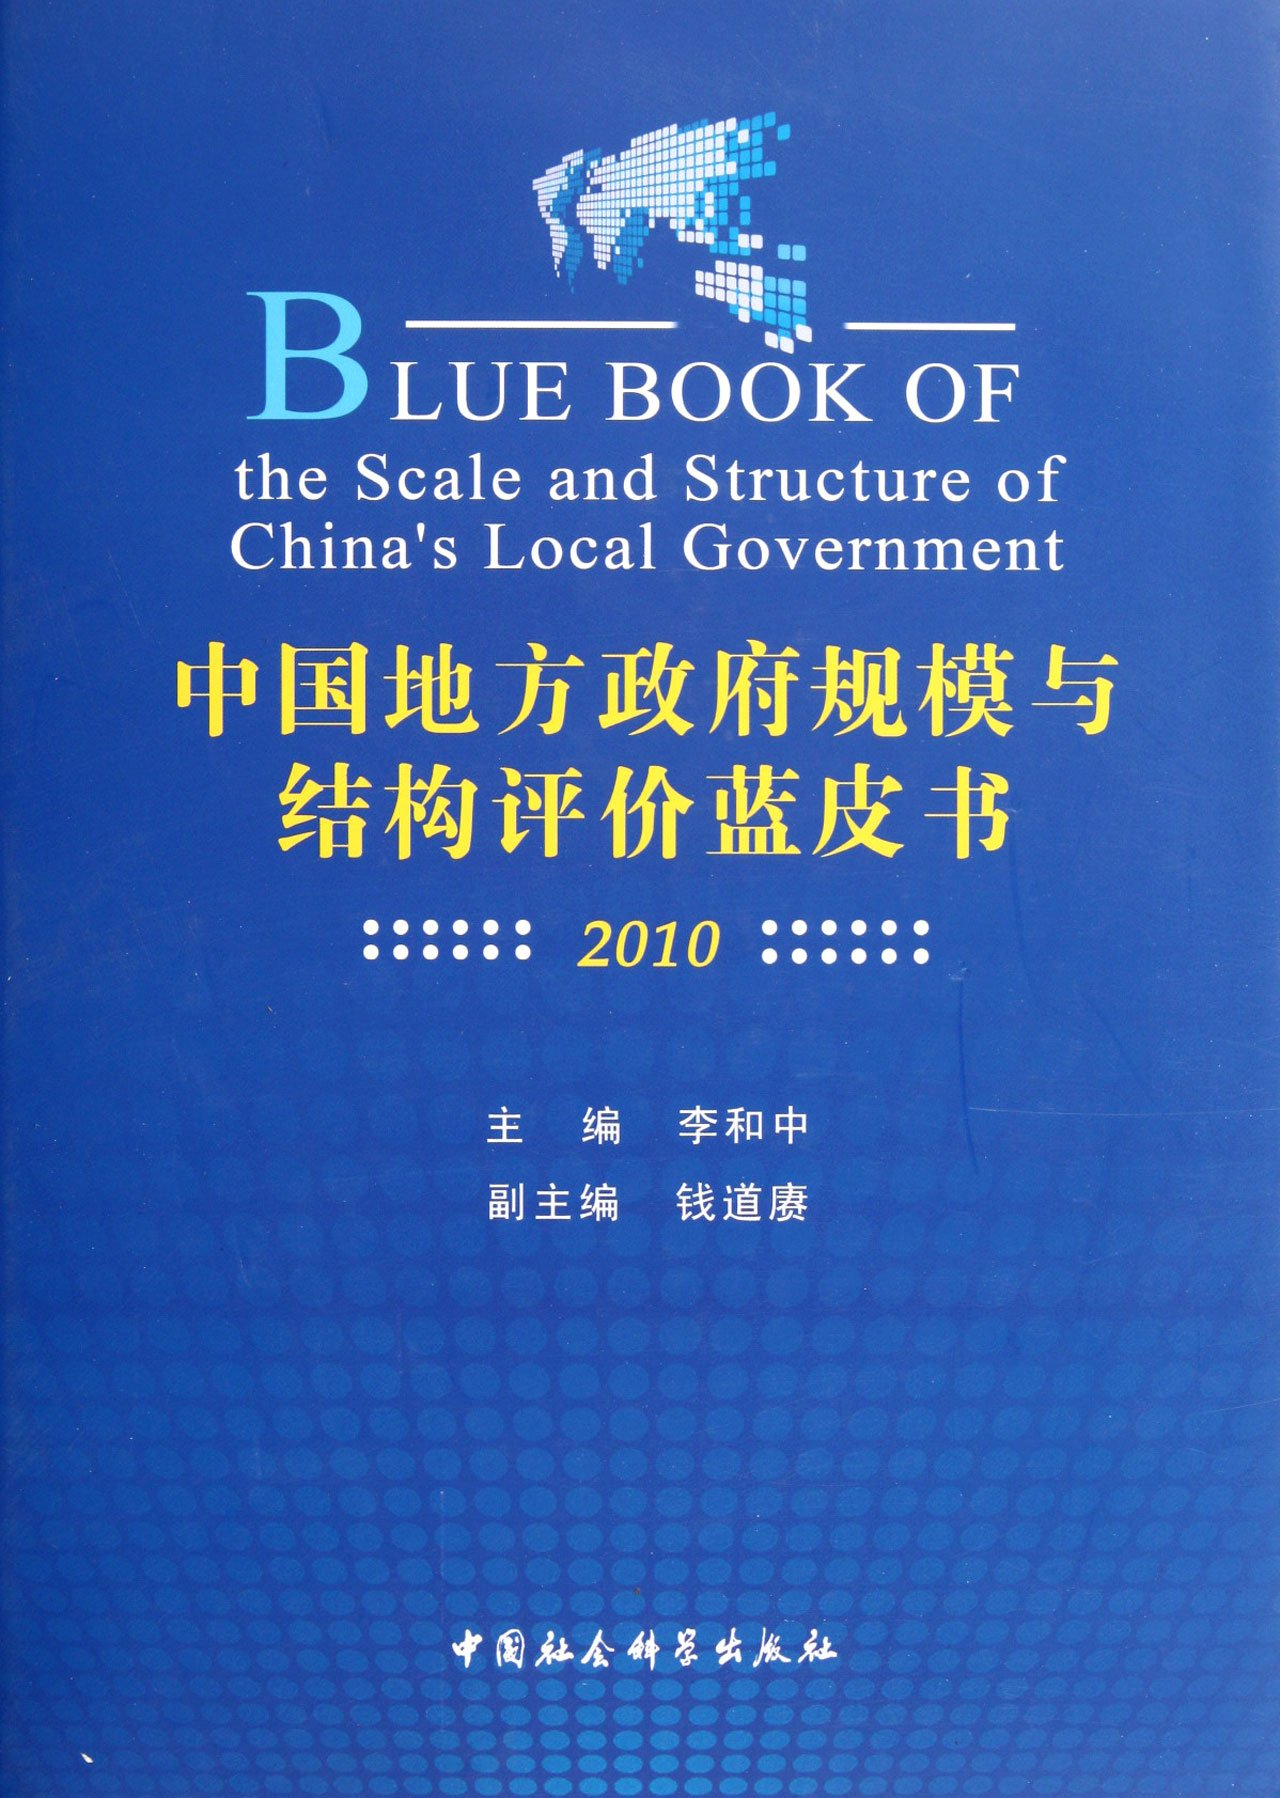 Read Online 2010-Blue Papers of Evaluation of the Size And Structure of Chinese Local Governments (Chinese Edition) PDF